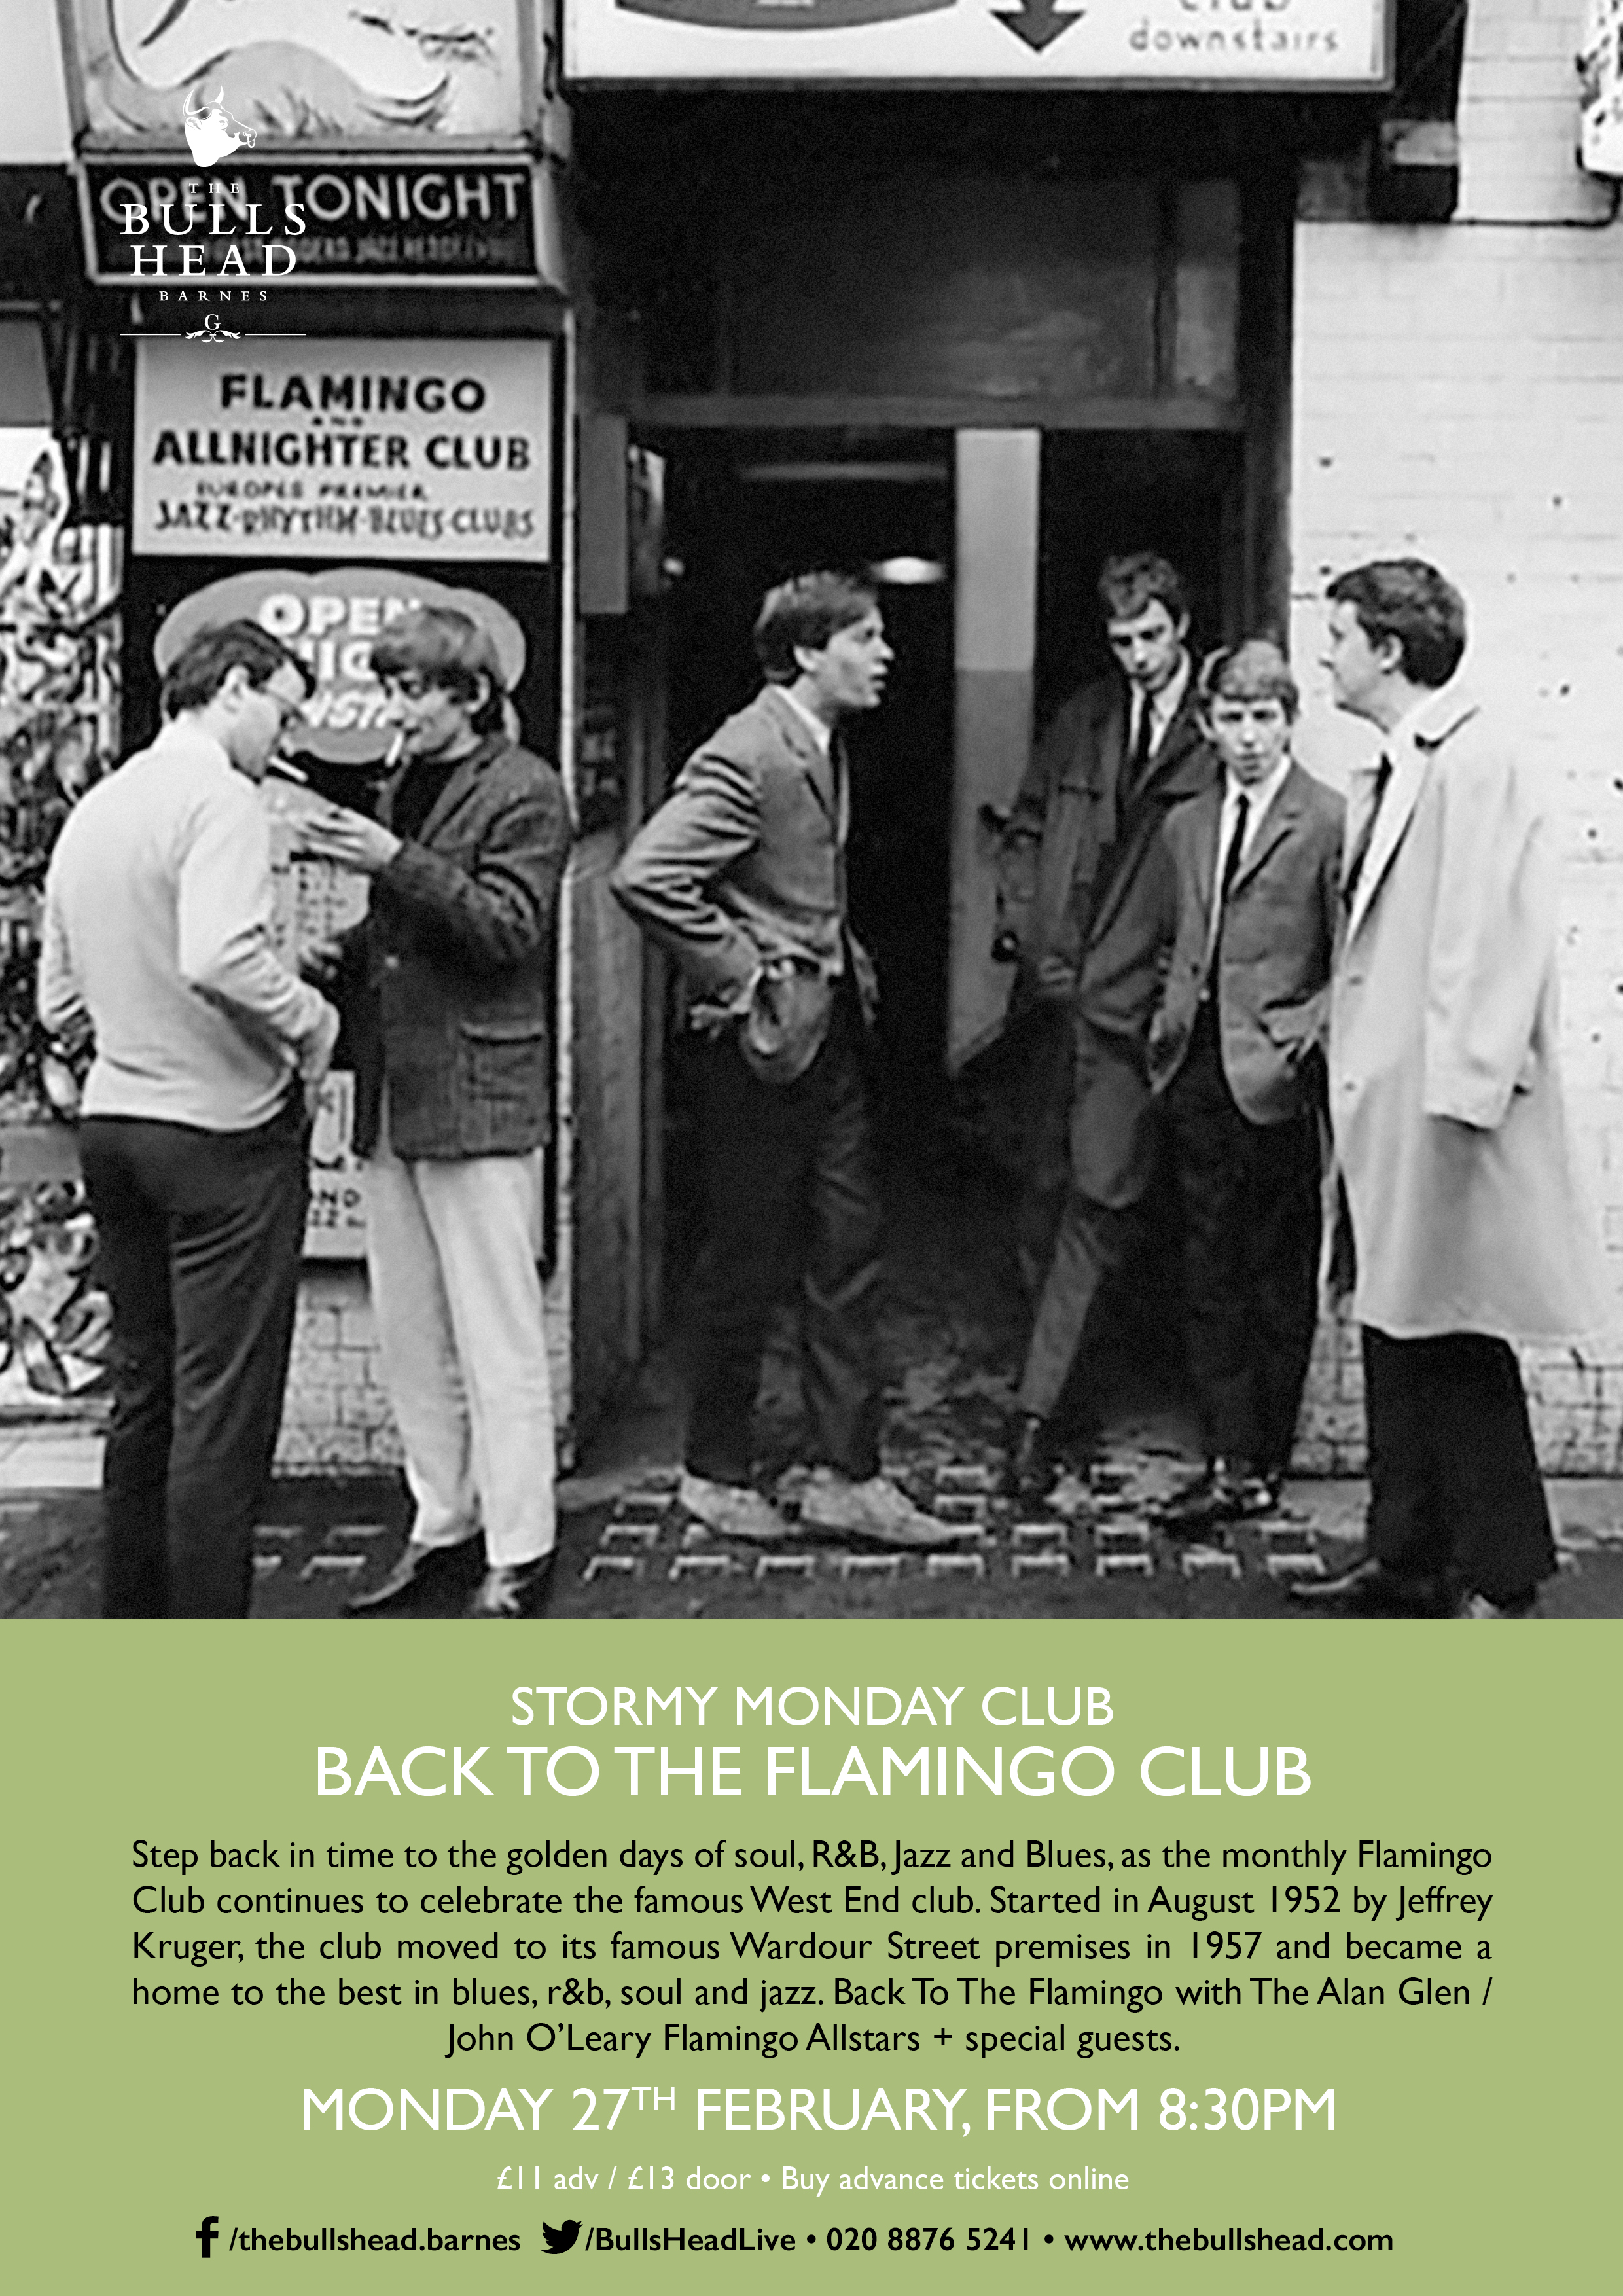 Stormy Monday Club Present Back To The Flamingo Club With Alan Glen and John O'Leary